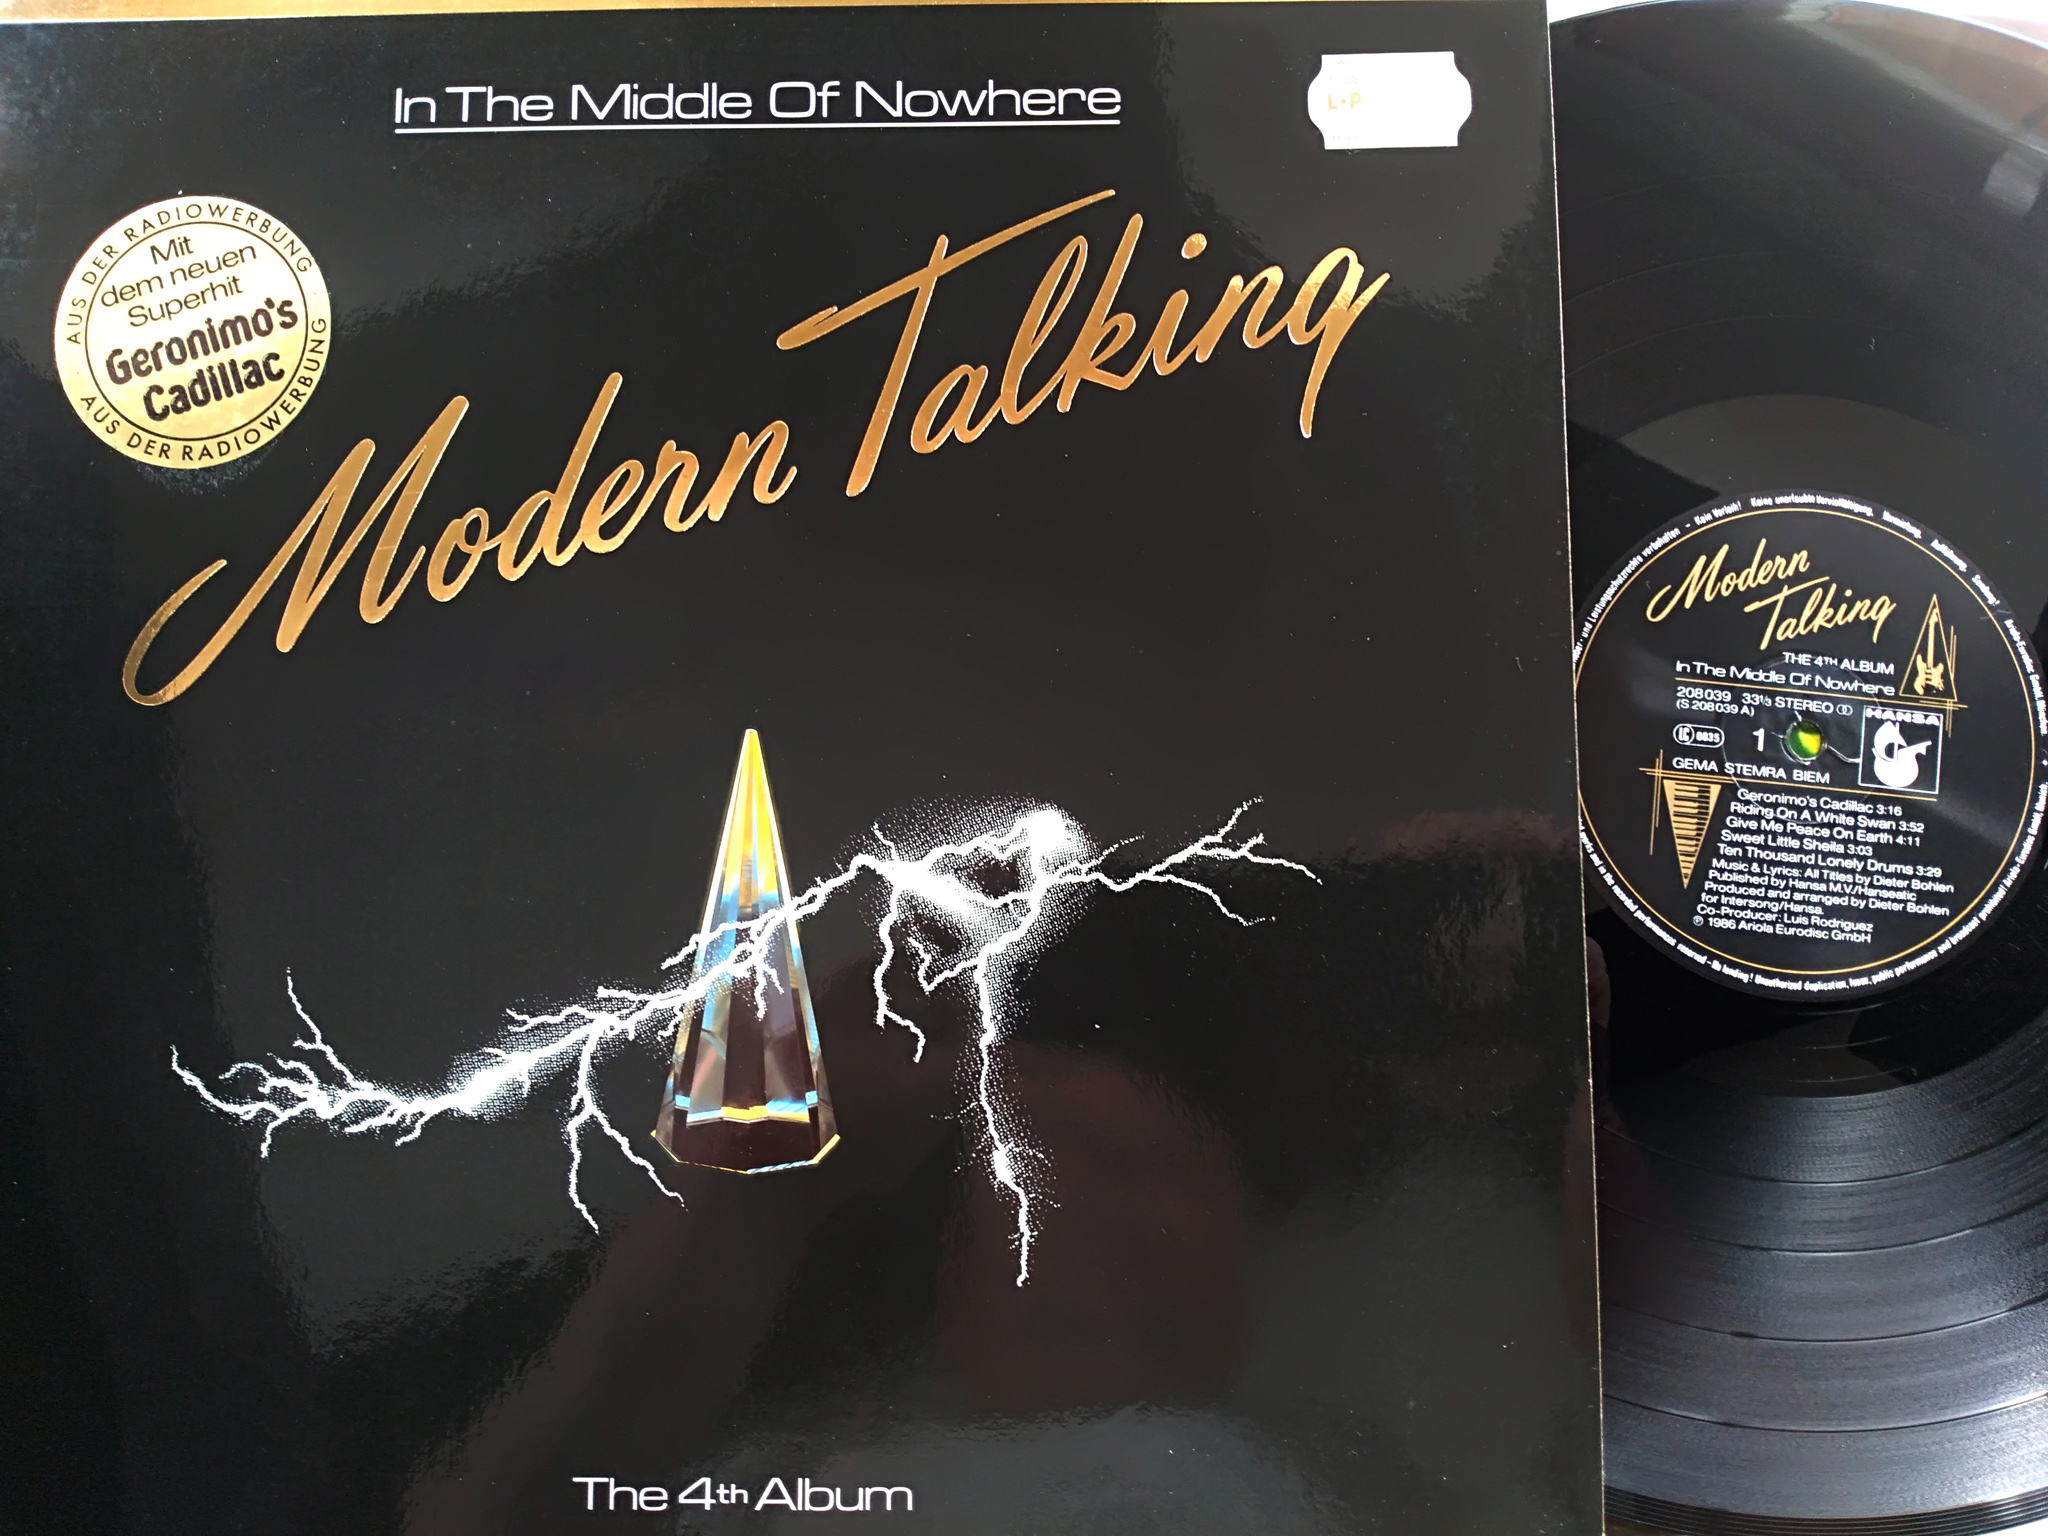 Modern Talkking - In The Middle of  Nowhere 4album